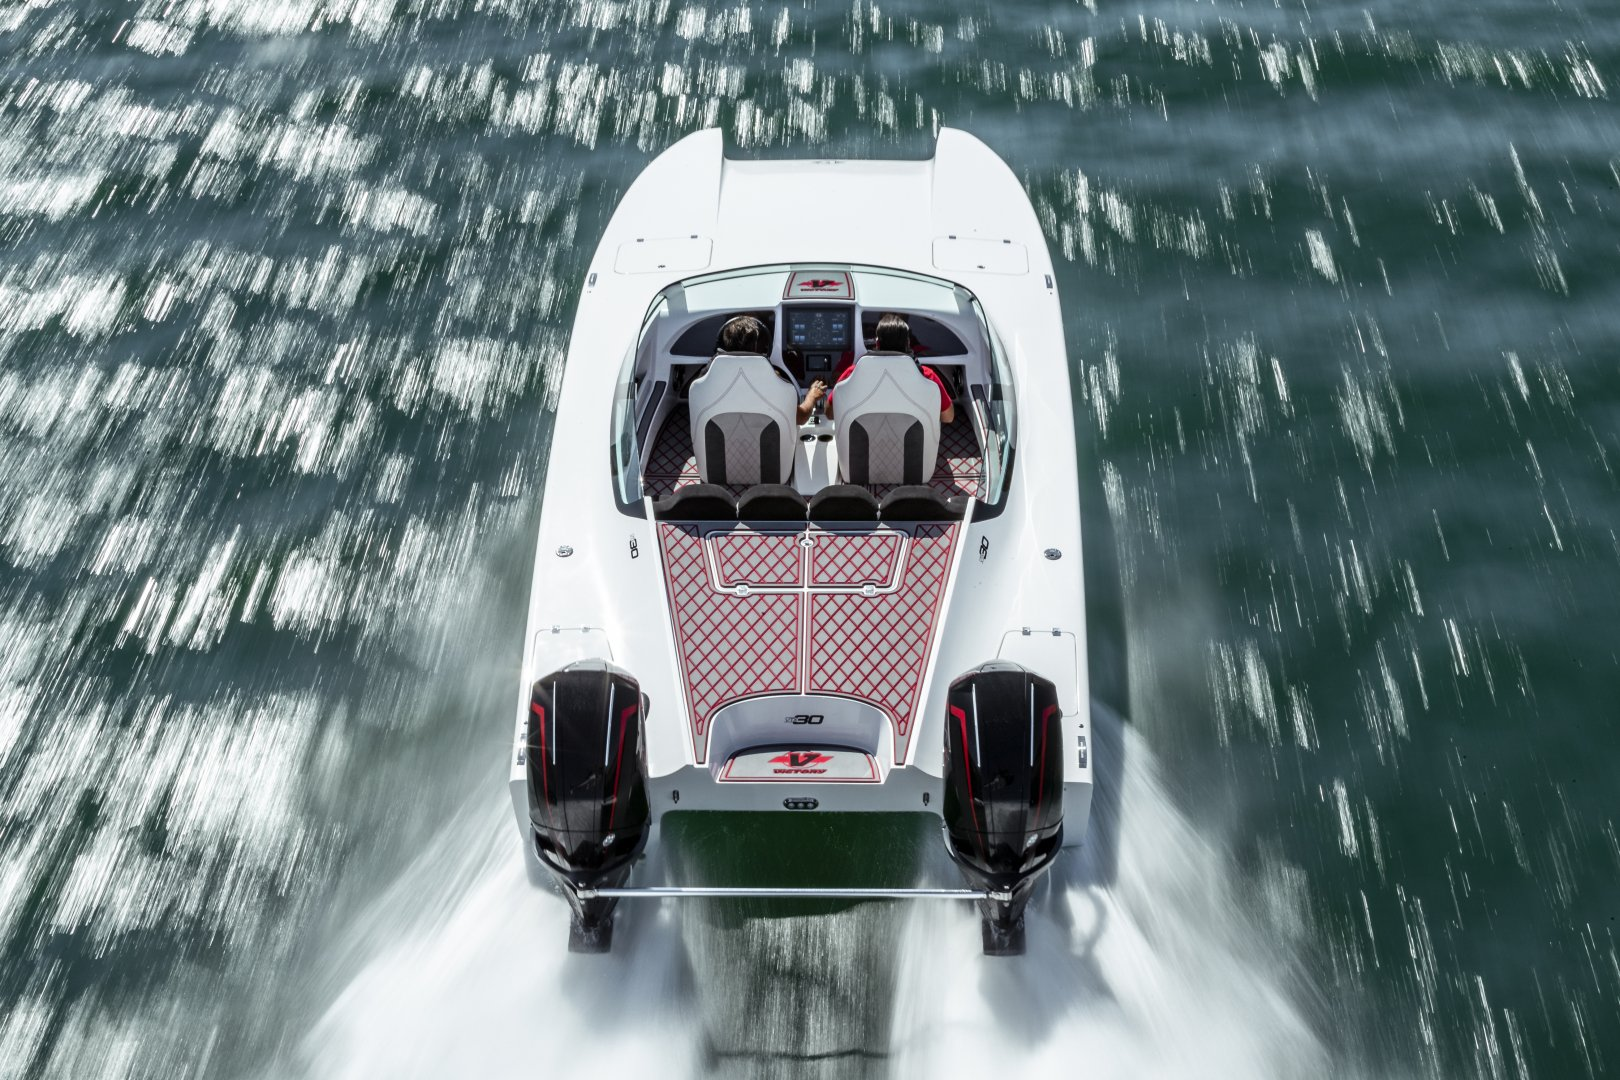 victory-powerboats-west-2020-tom-leigh-371.jpg